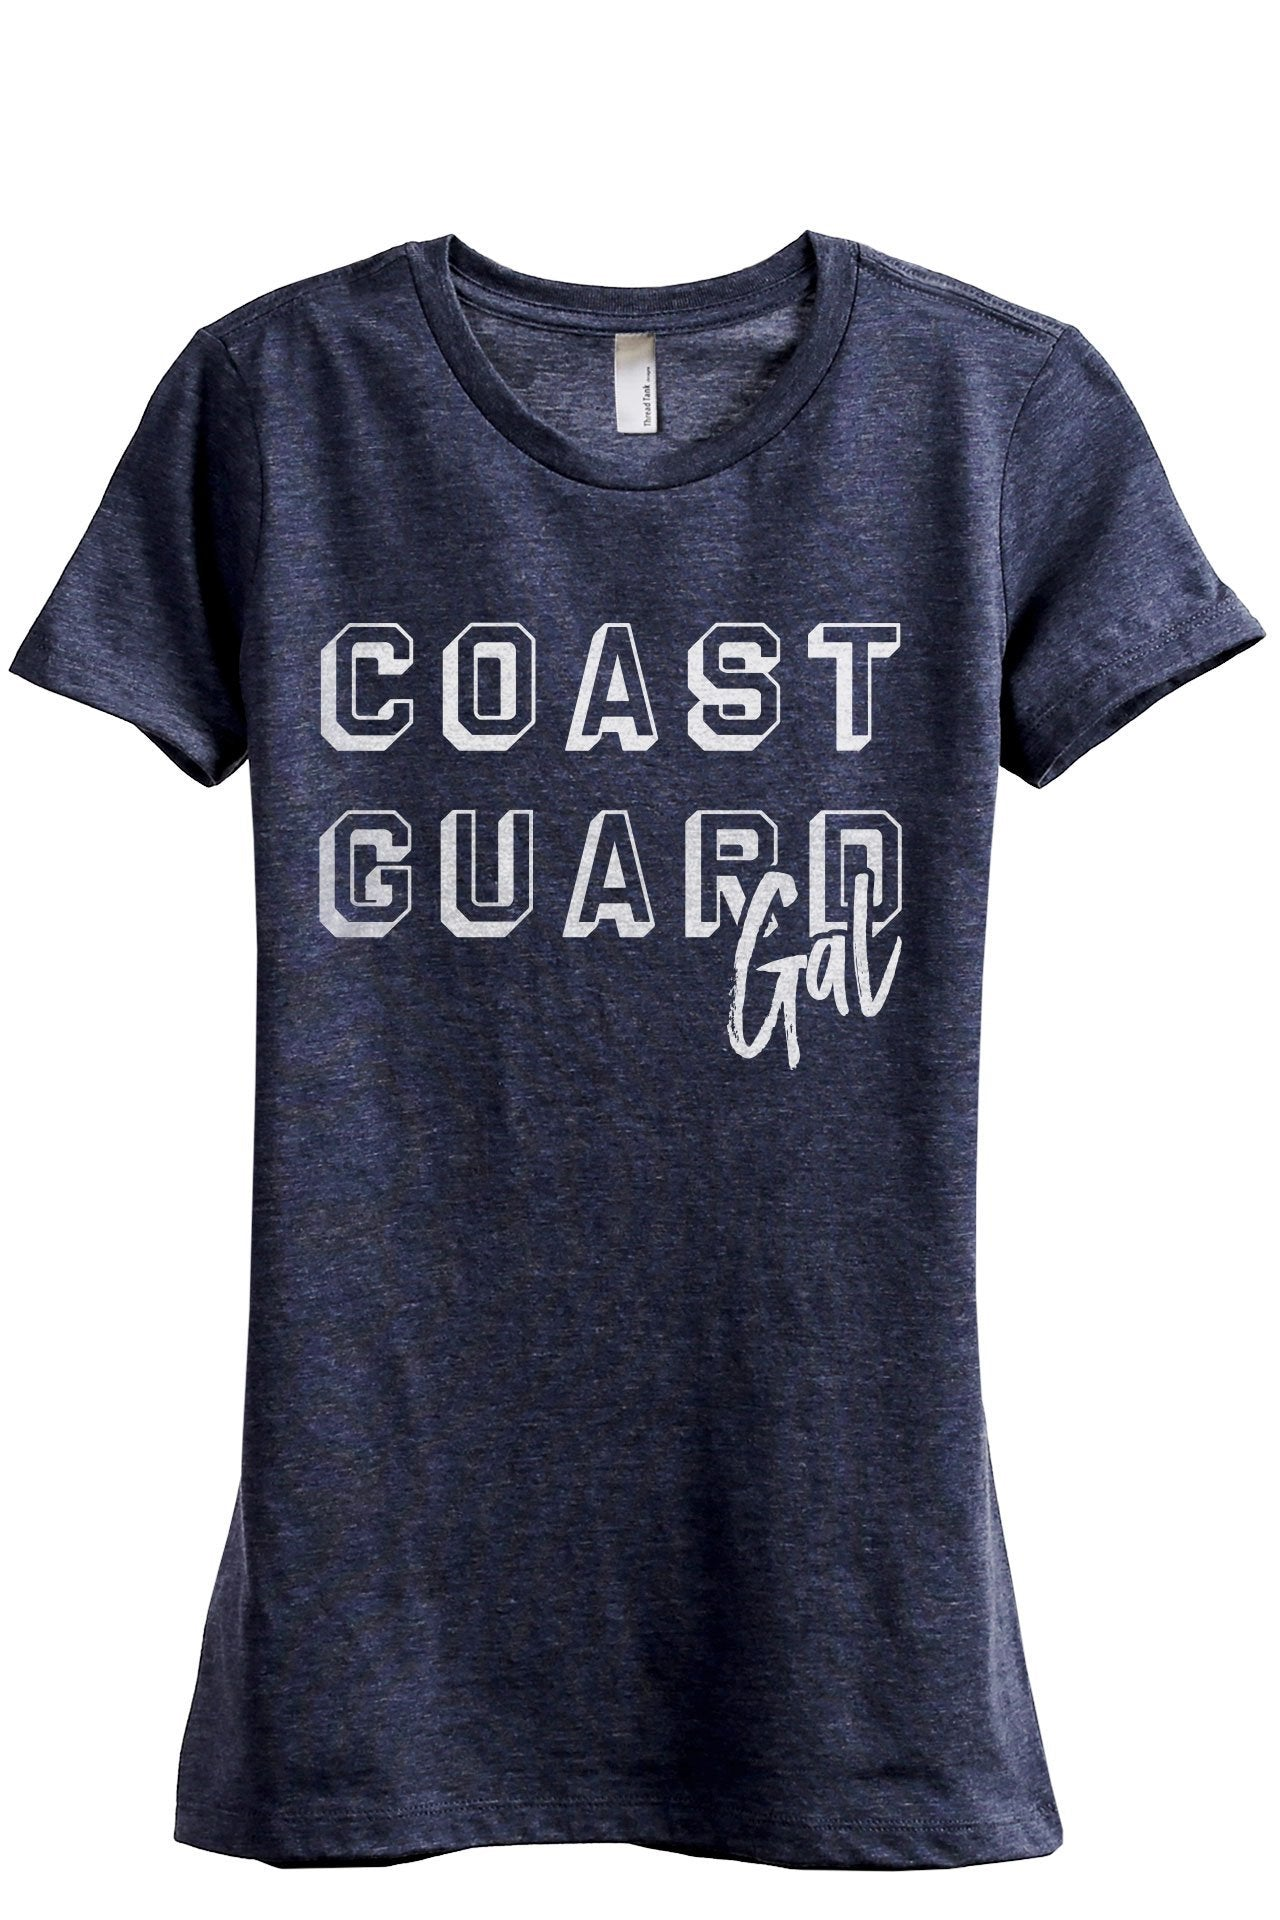 Coast Guard Gal Women's Relaxed Crewneck T-Shirt Top Tee Heather Navy Grey